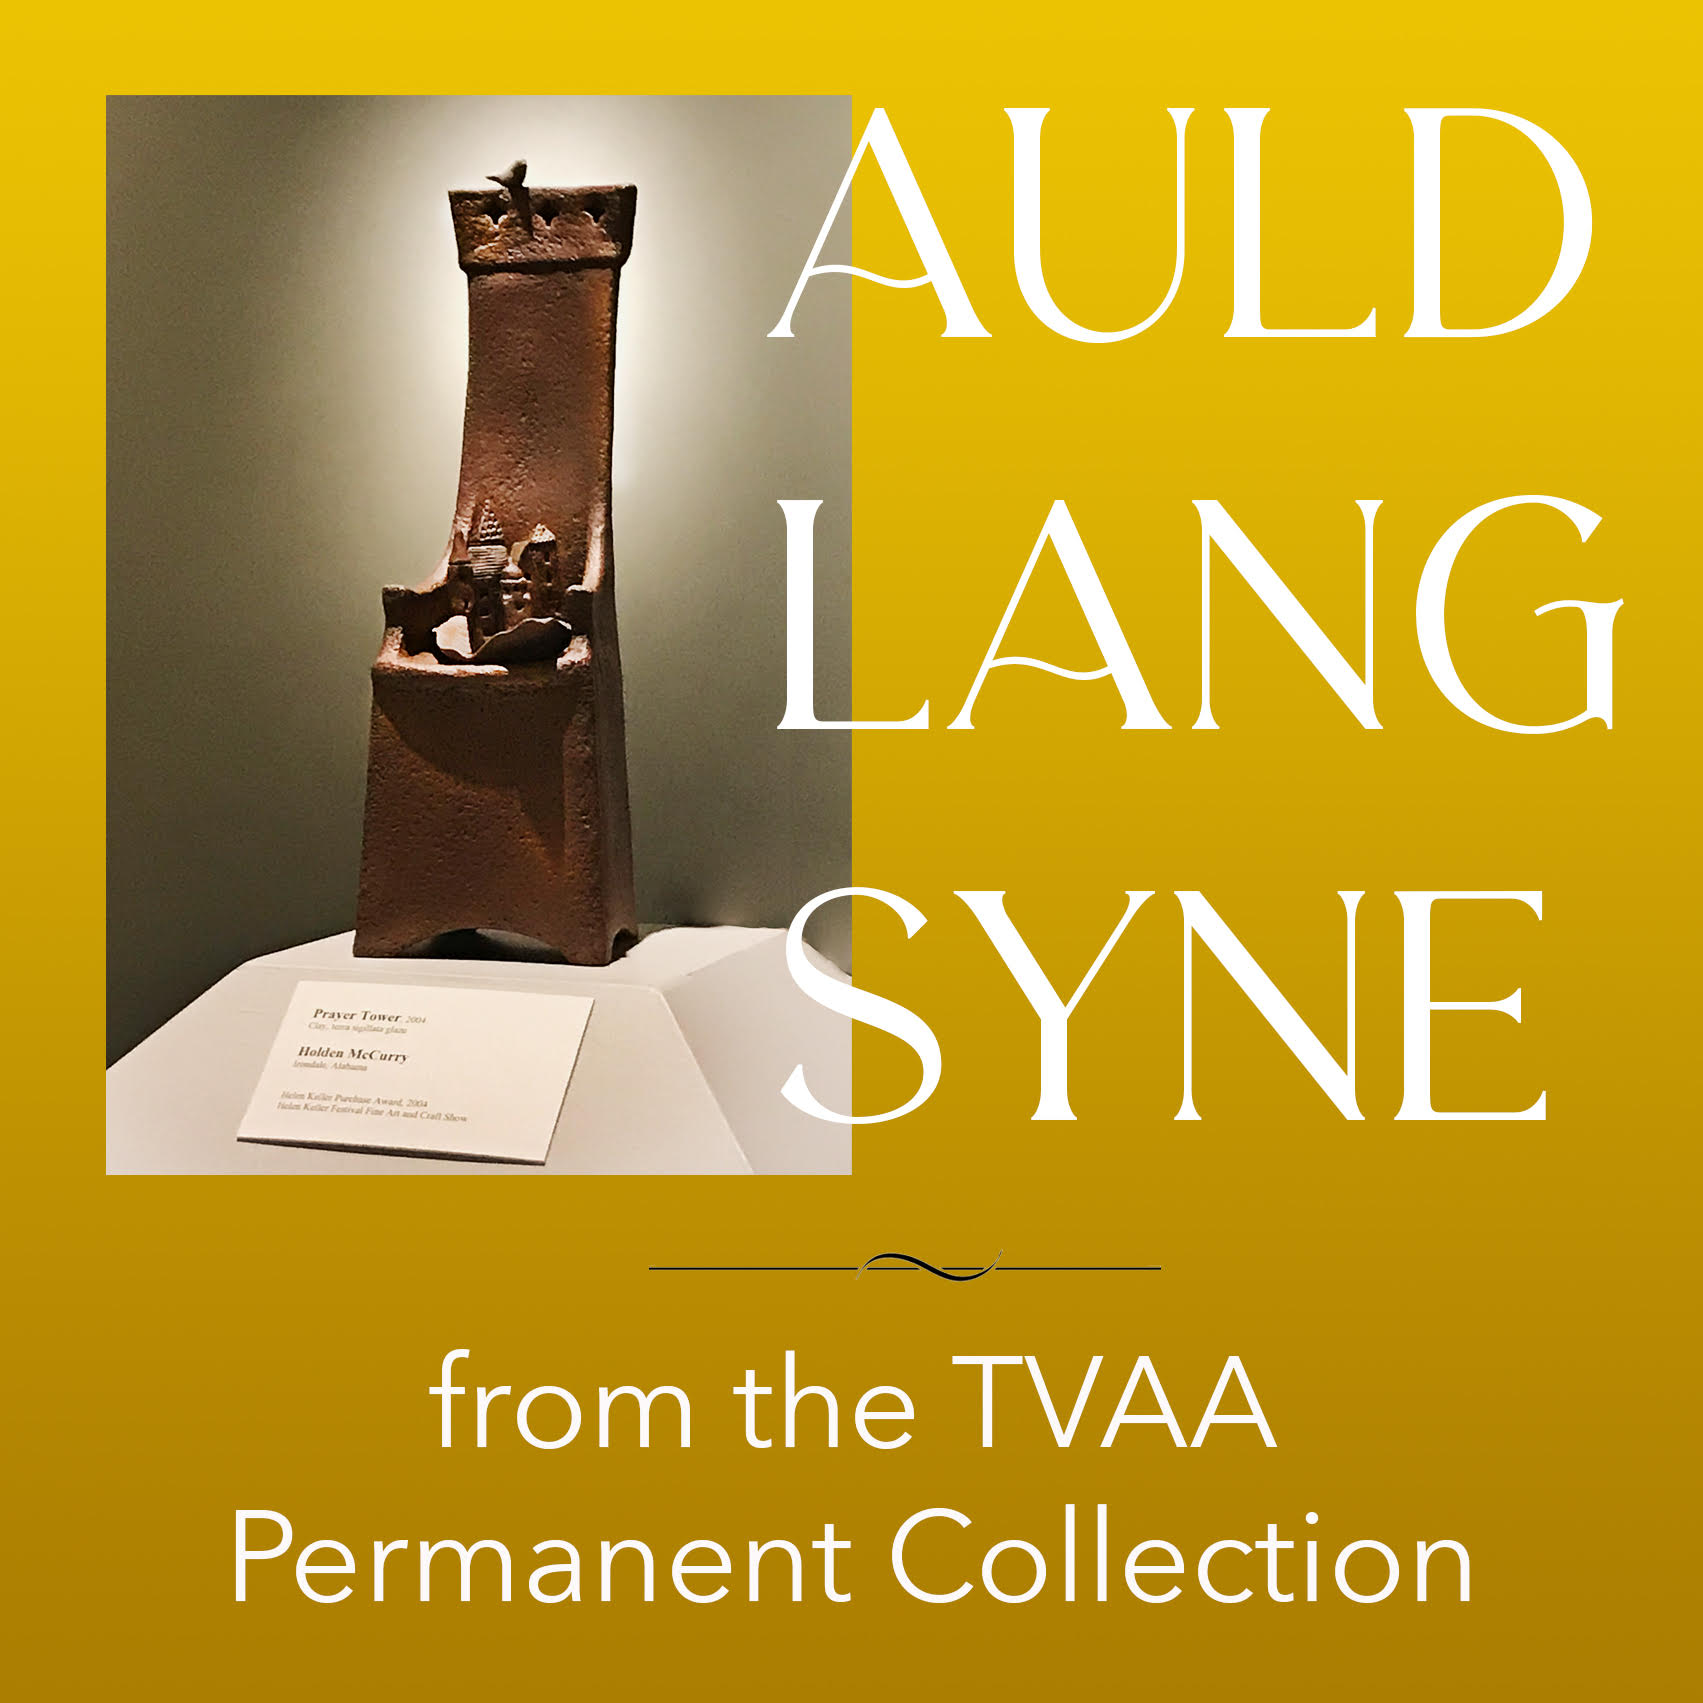 Auld Lang Syne Exhibition